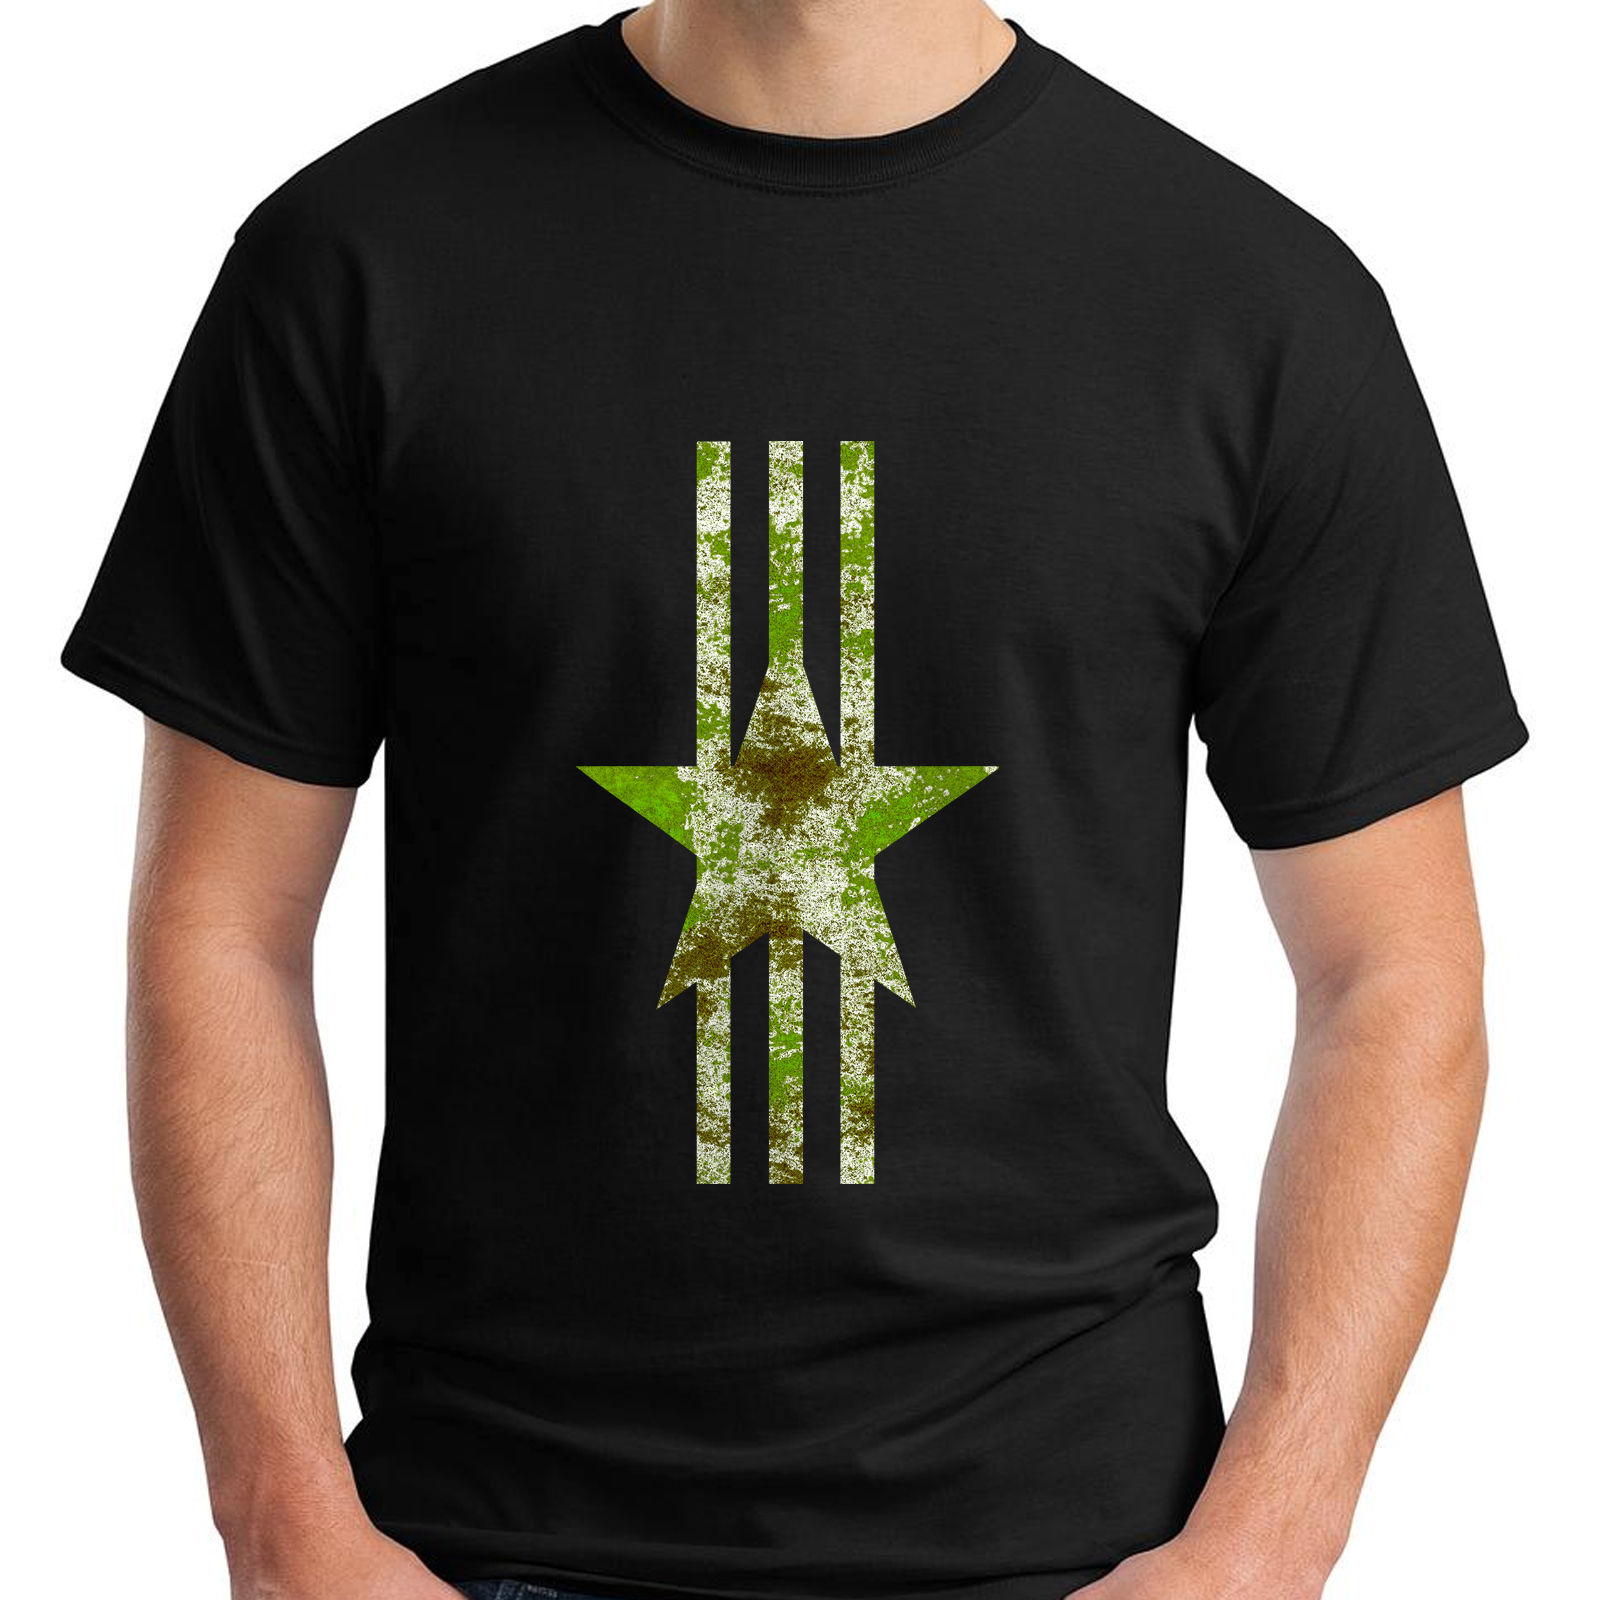 Design your own t shirt military - Personalized T Shirt Custom T Shirt New Military Green Camo Star Logo White Stripes Conservative Men S